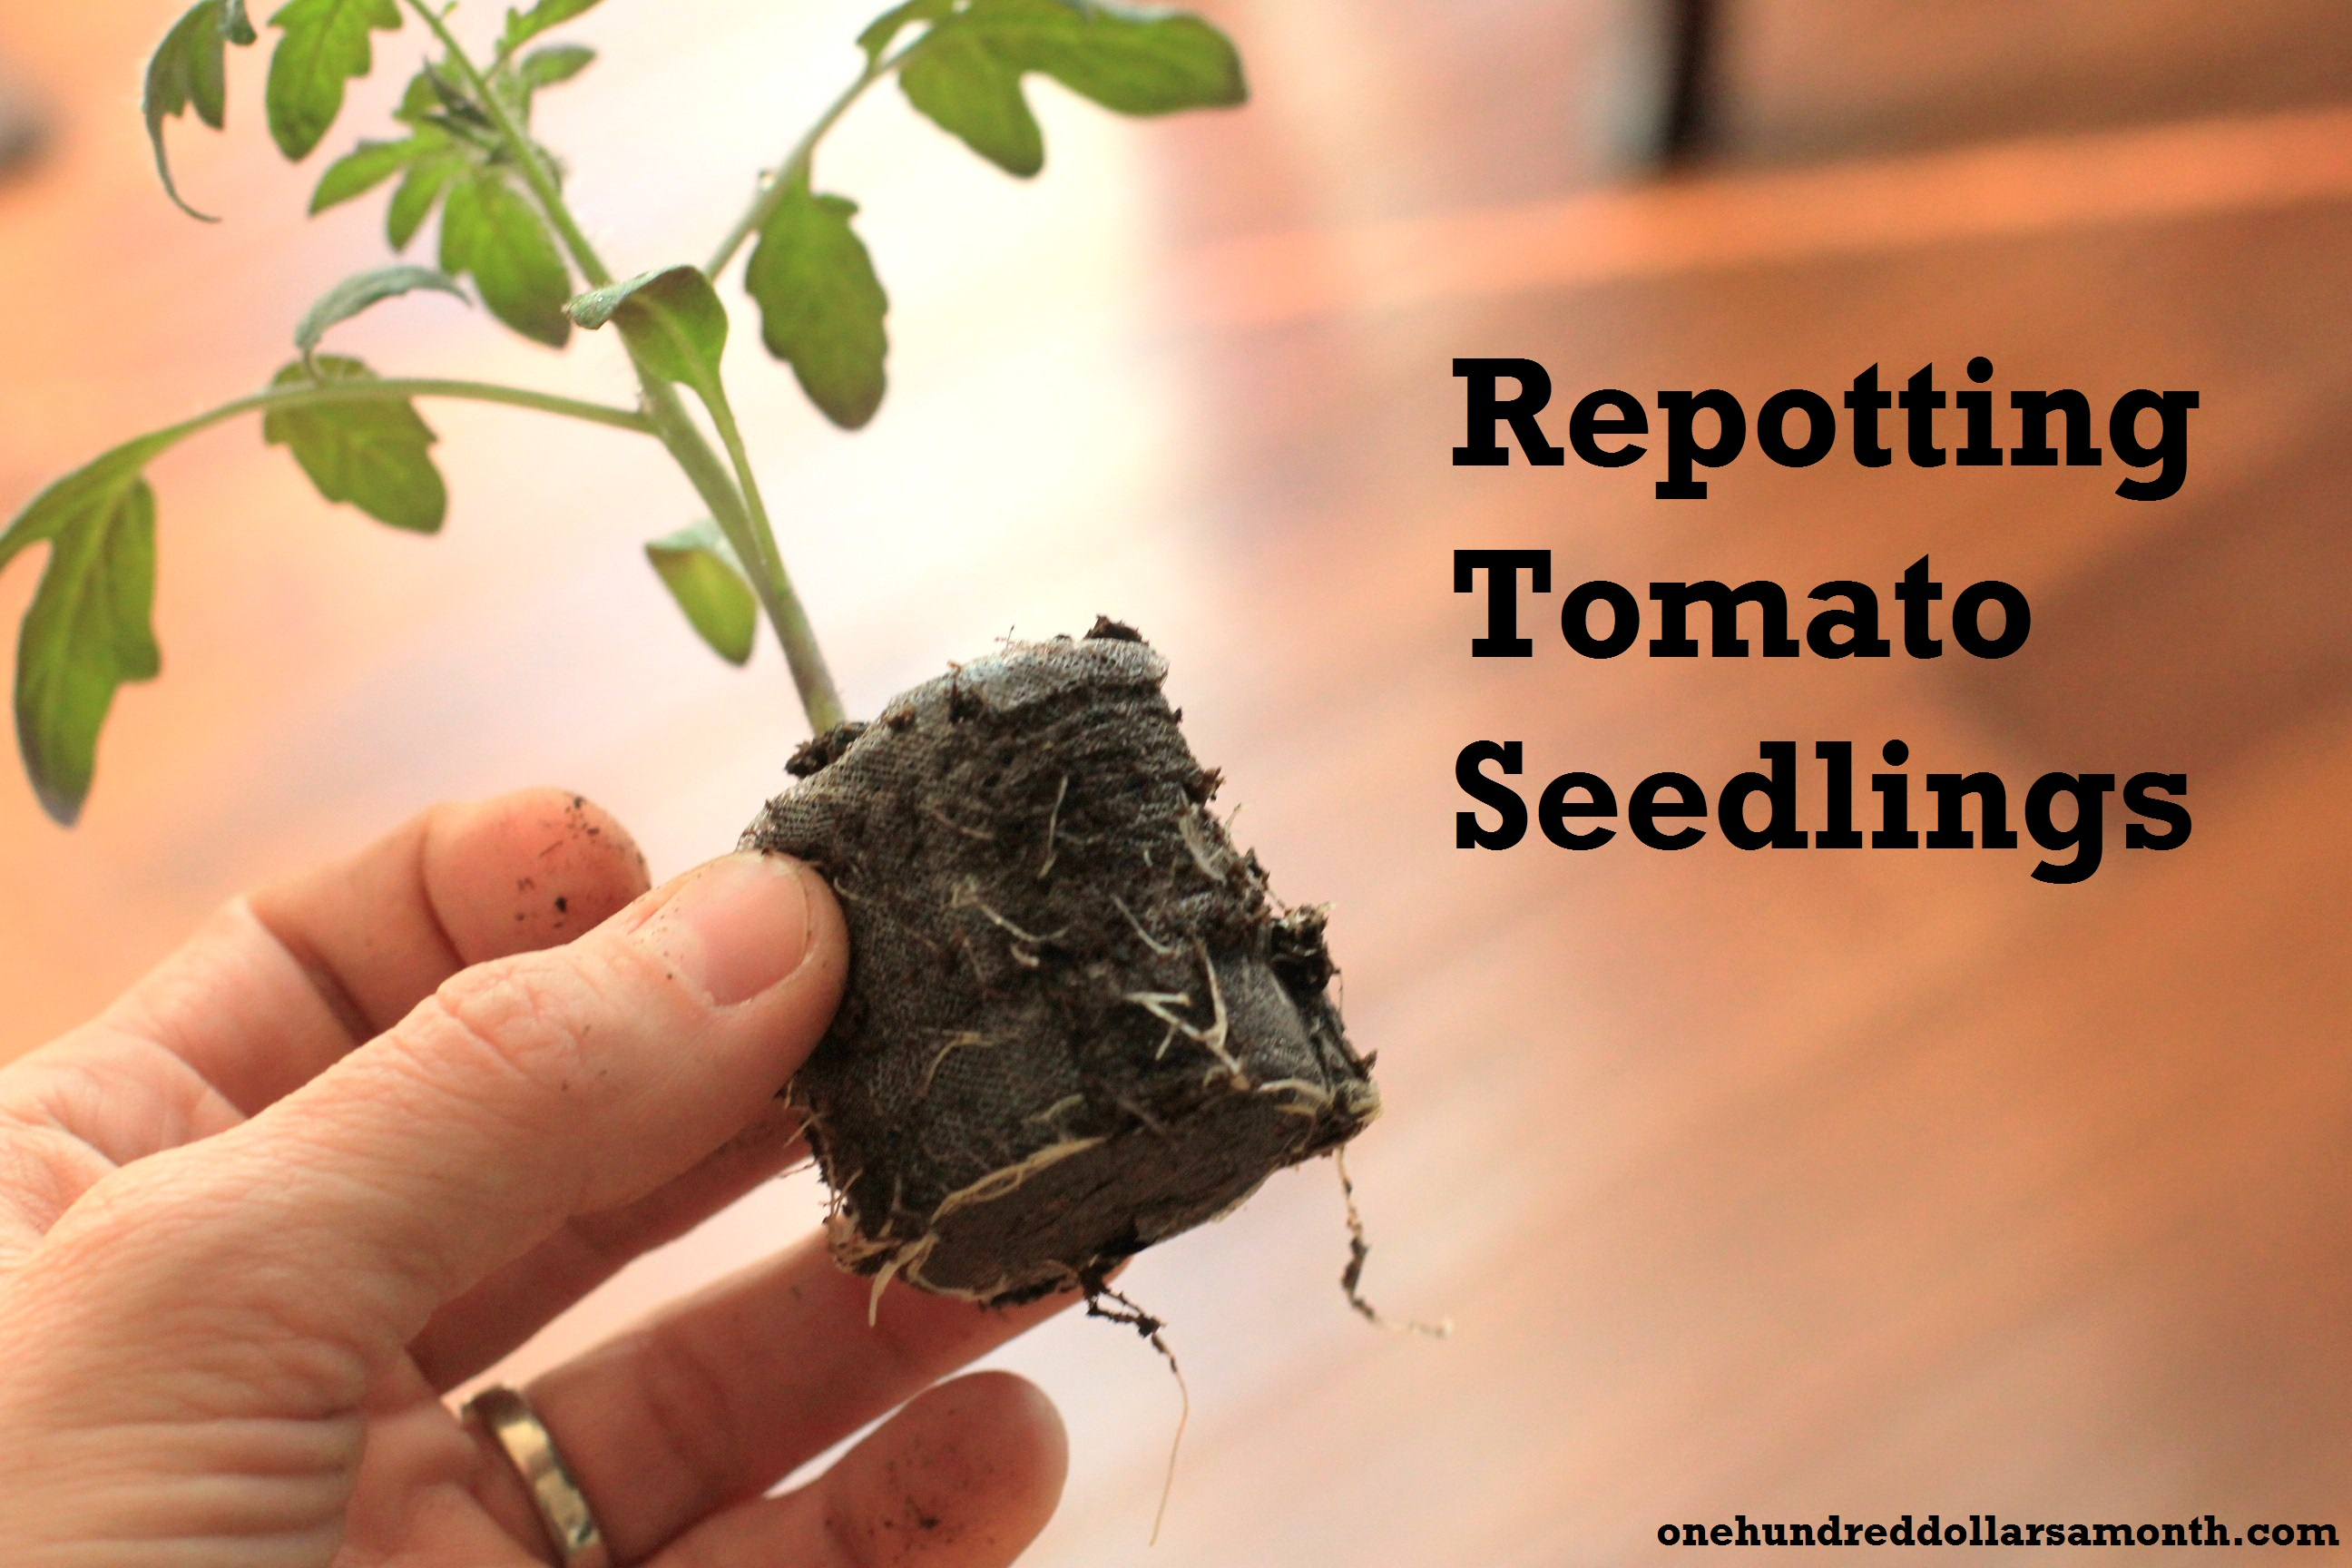 How to Grow Your Own Food: Repotting Tomato Seedlings